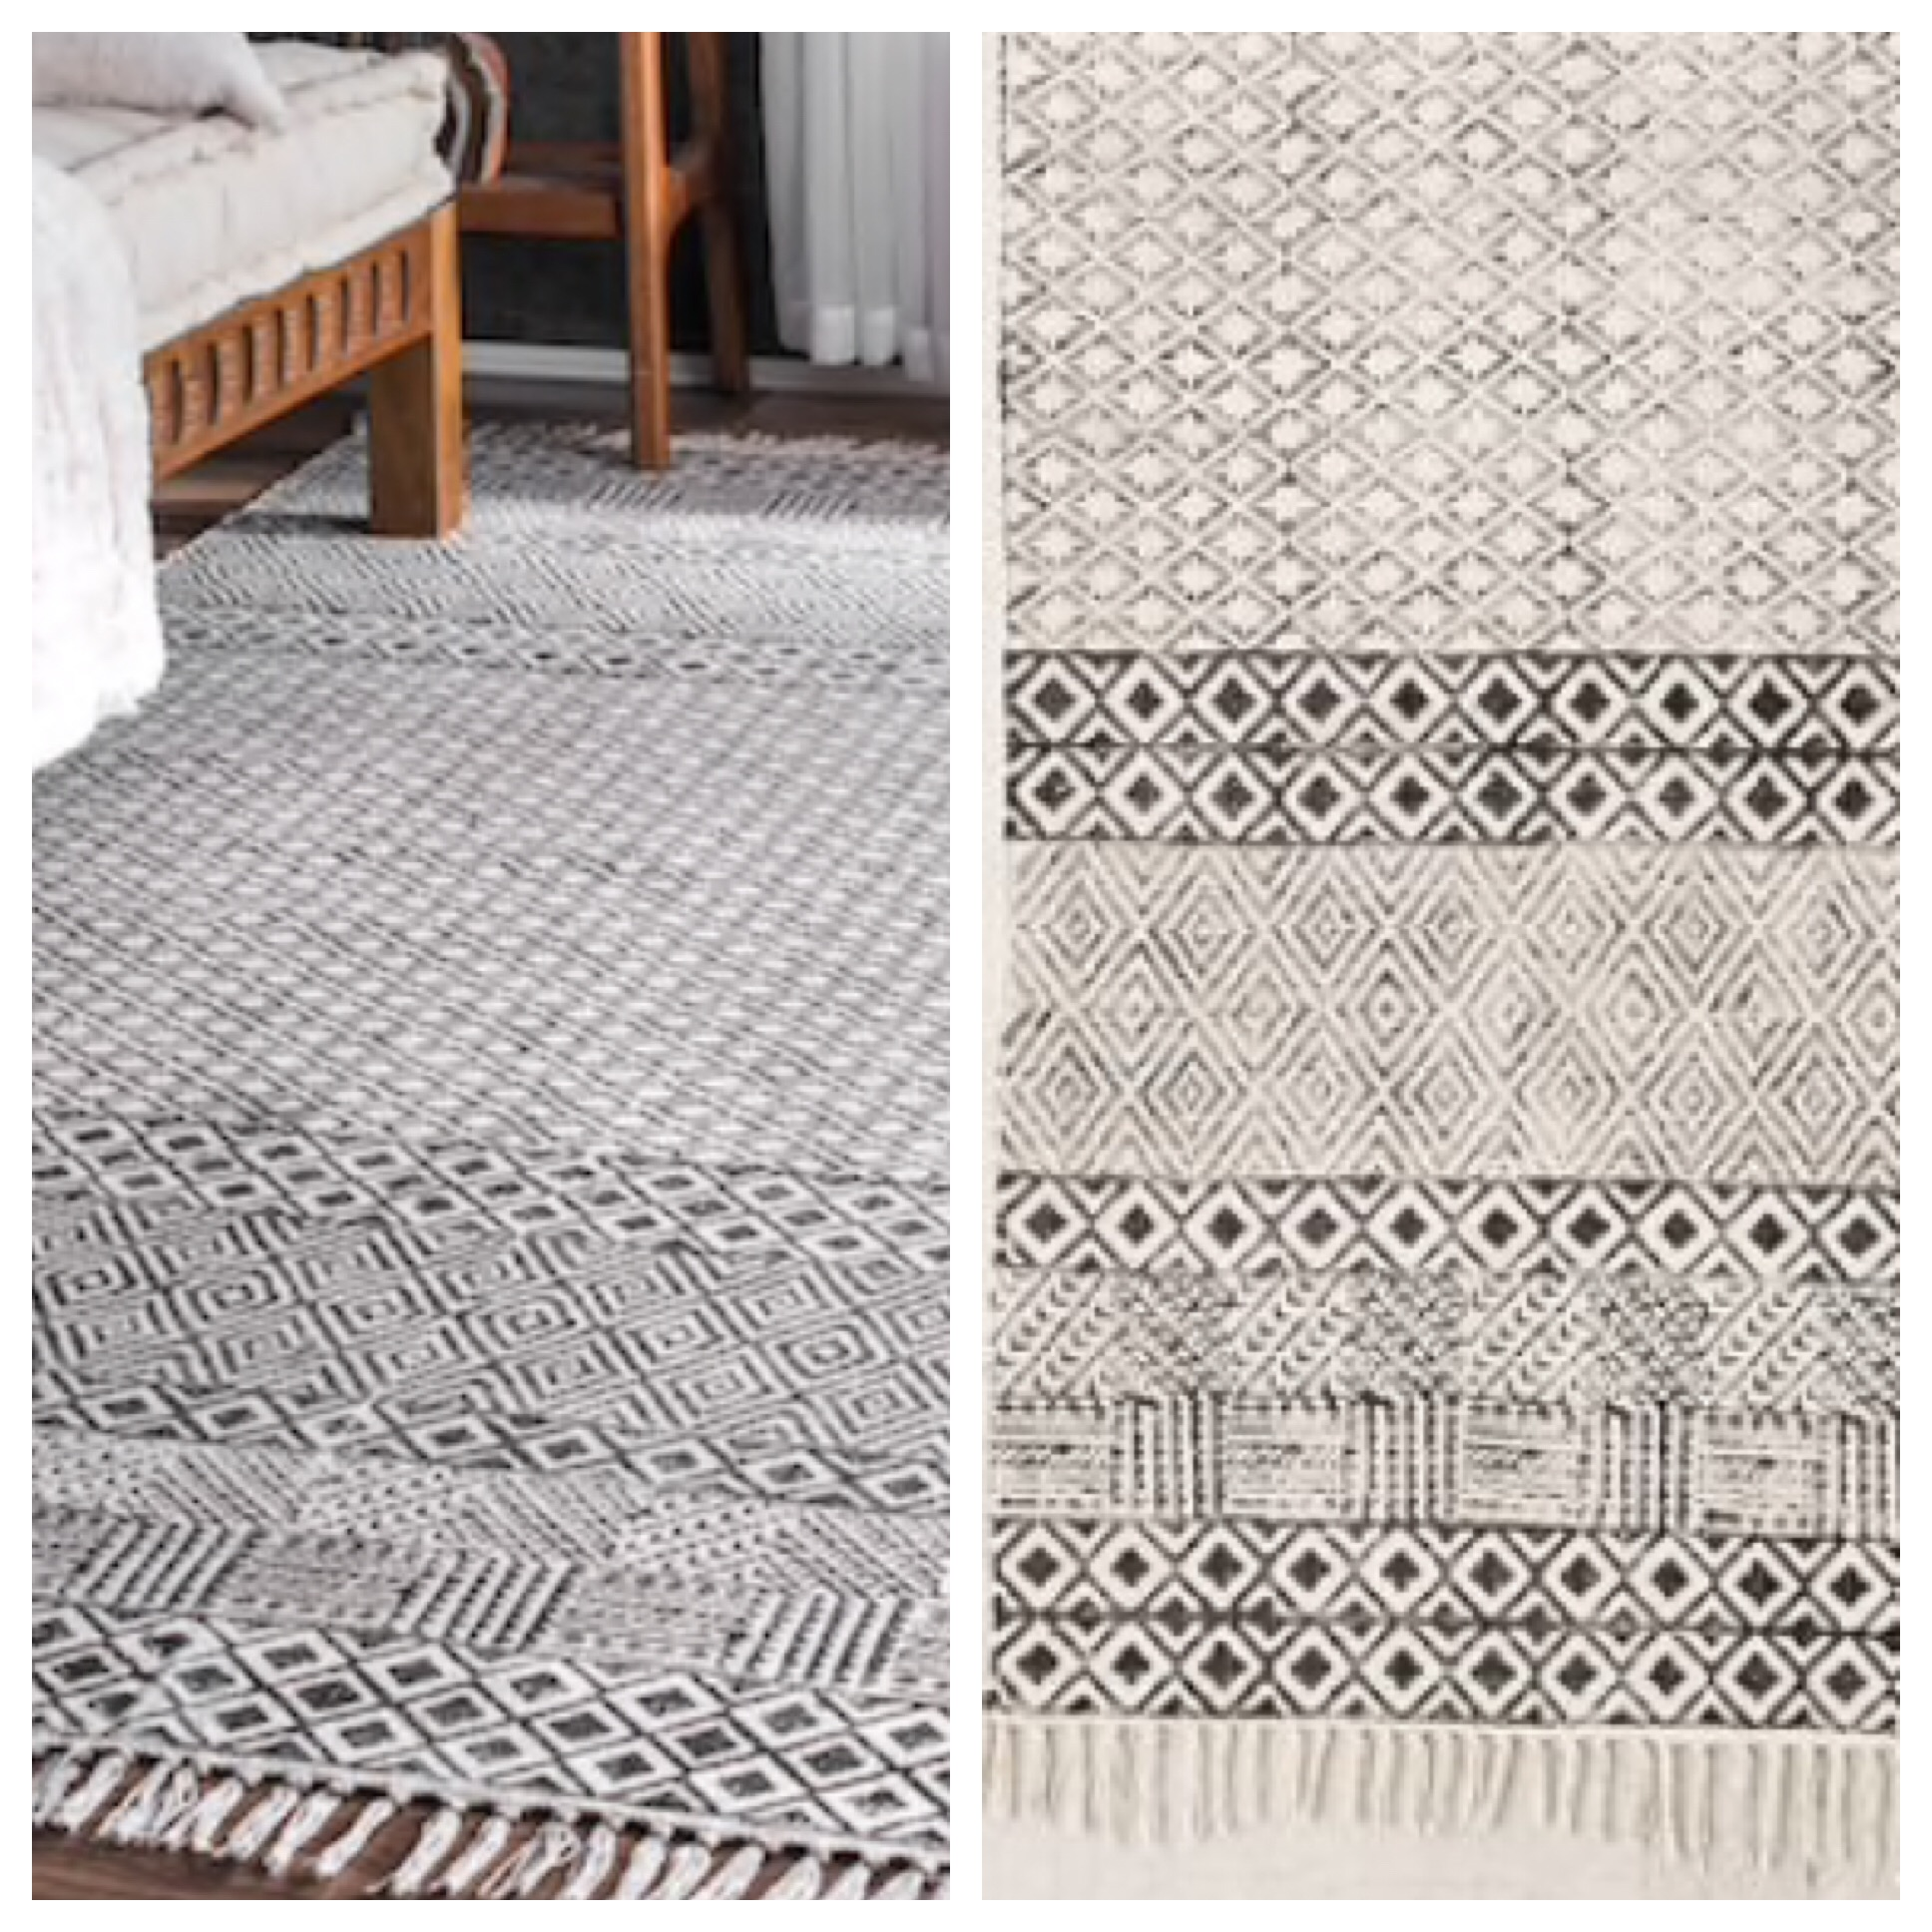 You can buy the Halen Horizontal Block Print Rug is $629 at Urban Outfitters OR the Chembra Gray Block Printed Cotton Flatweave rug from RUGSUSA for $348. YOU GUYS IT'S EXACTLY THE SAME!!!